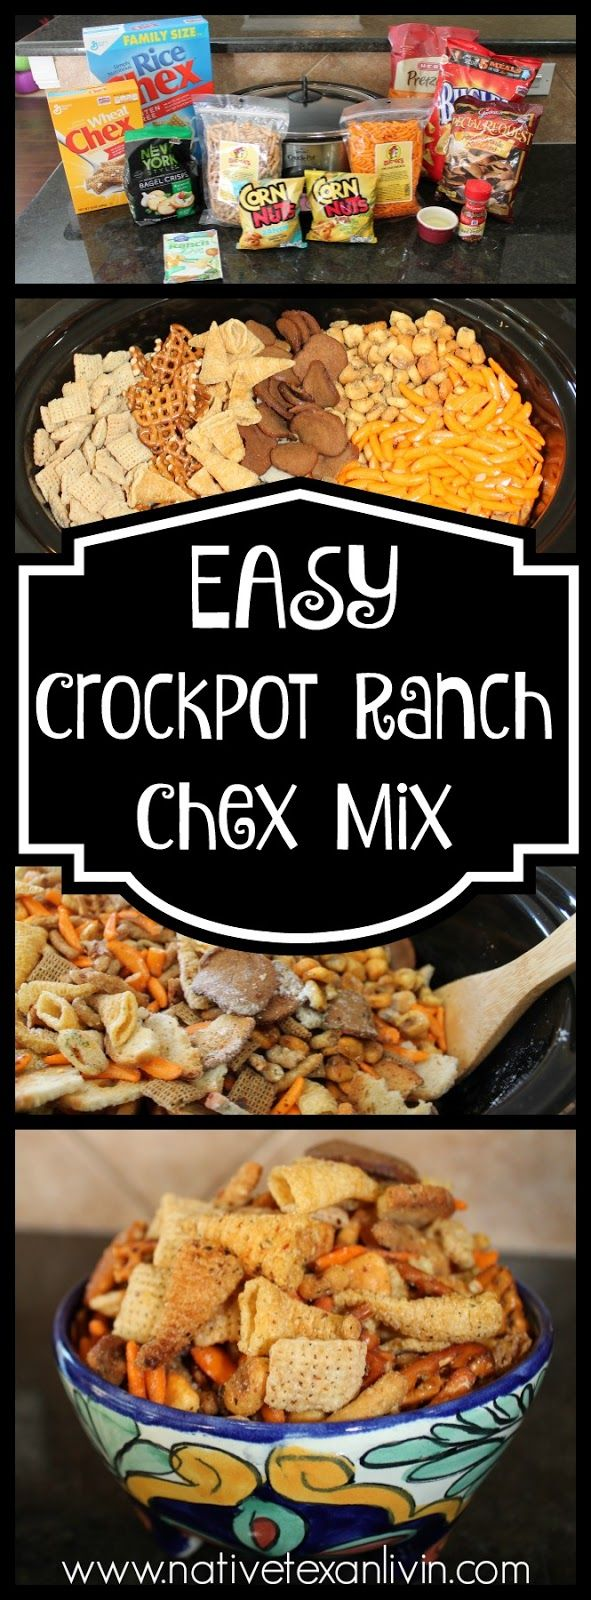 Easy CrockPot Ranch Chex Mix www.nativetexanlivin.com